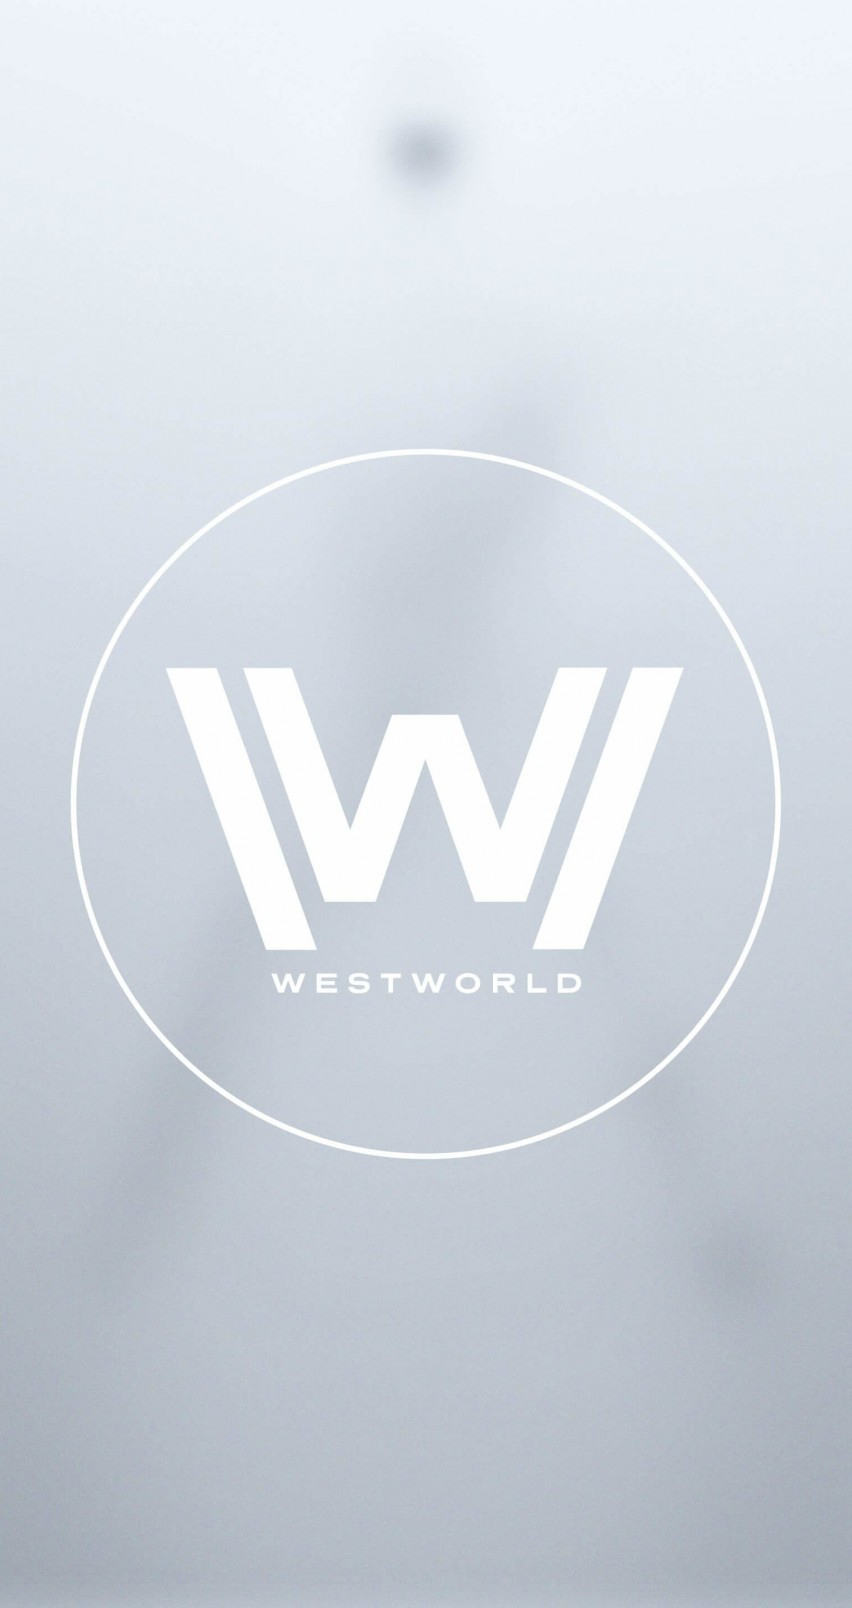 Westworld Logo Wallpaper for Apple iPhone 6 / 6s